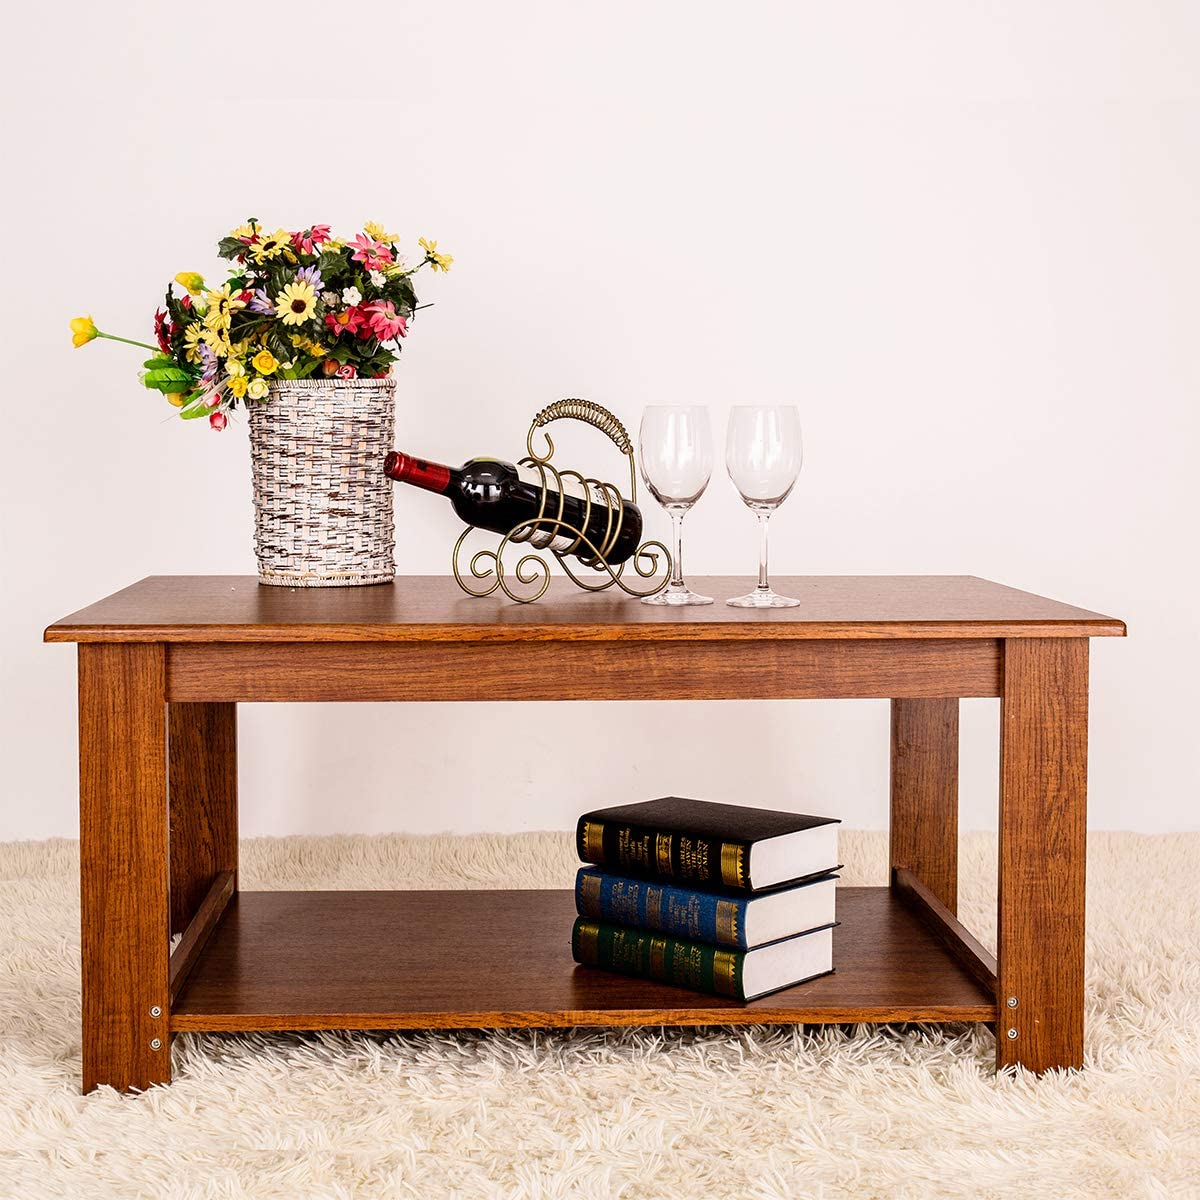 GRAFZEAL Coffee Table, Sofa Cocktail Table with Storage Shelf, TV Table Rectangular Sofa Table Office Table Wood Furniture for Living Room, Easy Assembly, Rustic Brown KFZ01X